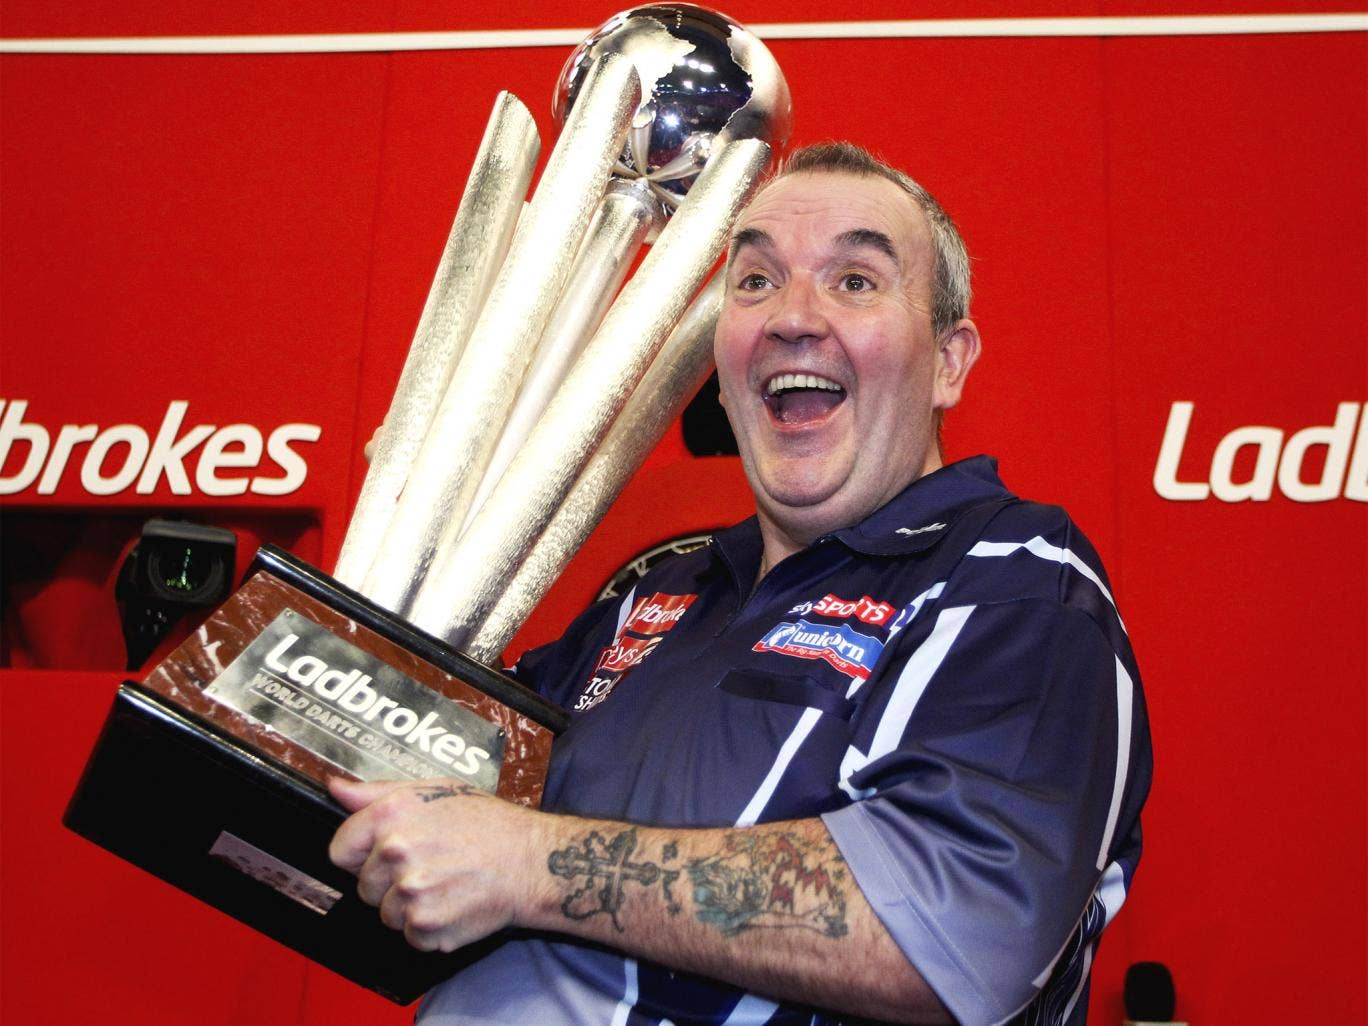 'It's what I do,' Phil Taylor said of his comeback to win a 16th title